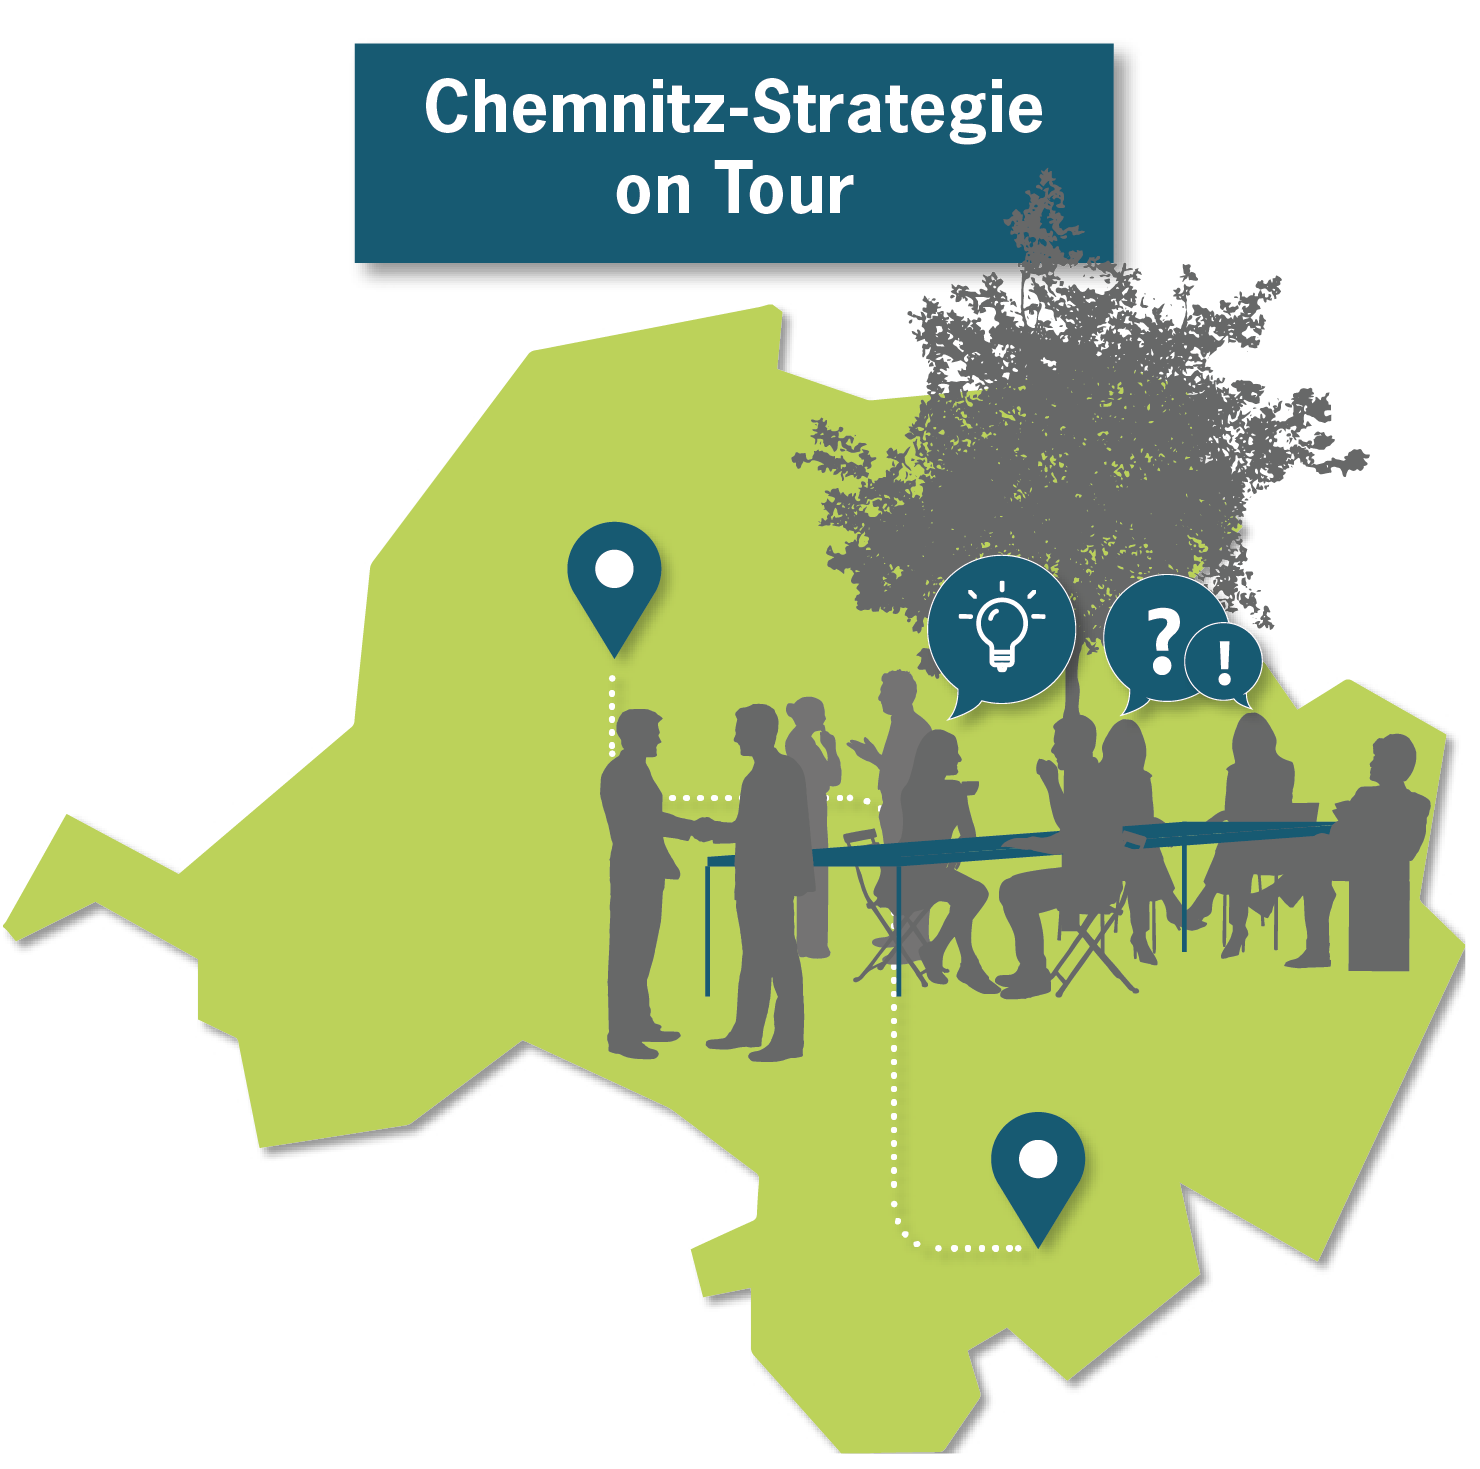 Chemnitz-Strategie on Tour